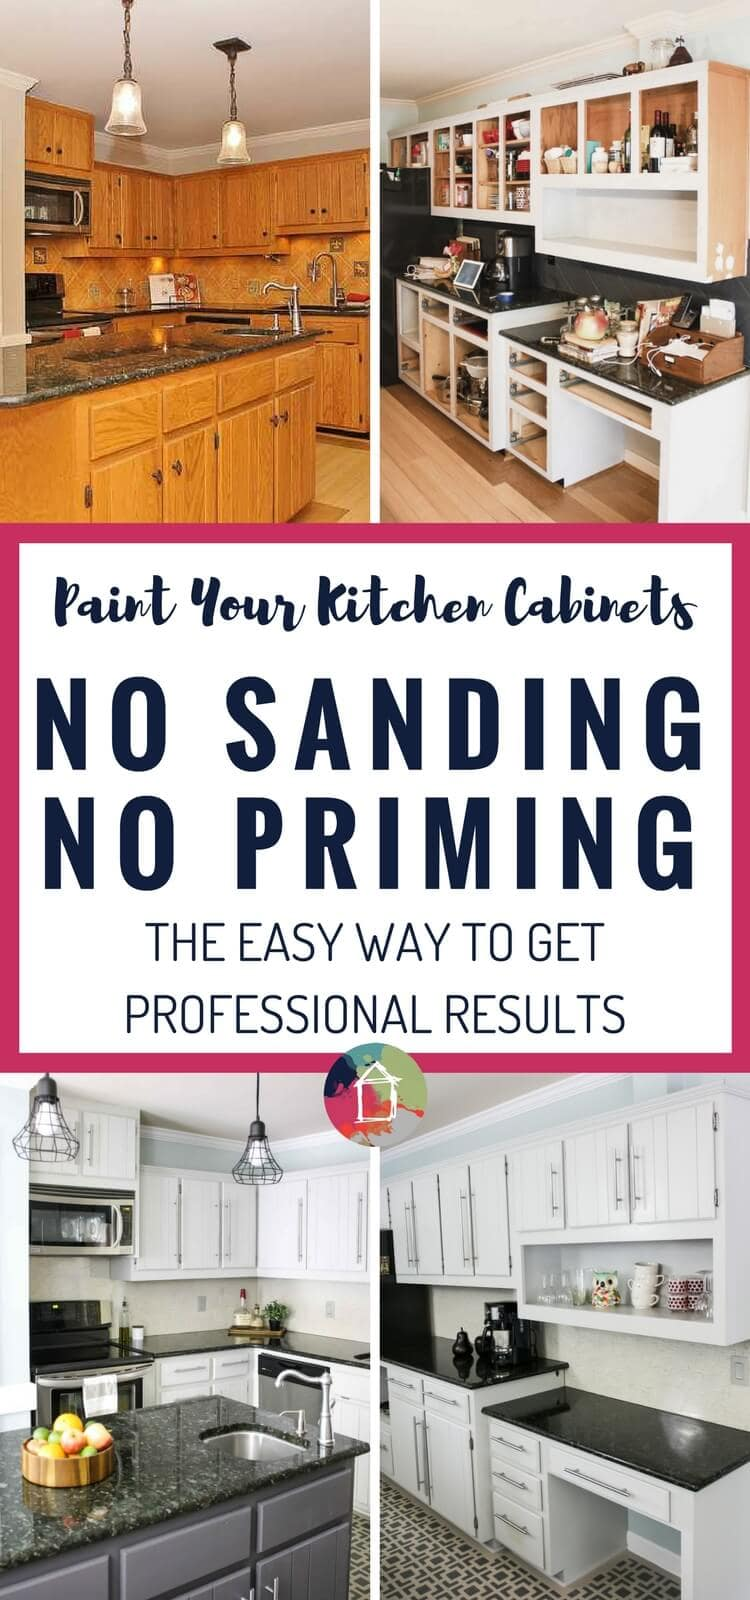 you can paint your kitchen cabinets without priming or sanding wooo hooo - Can You Paint Your Kitchen Cabinets